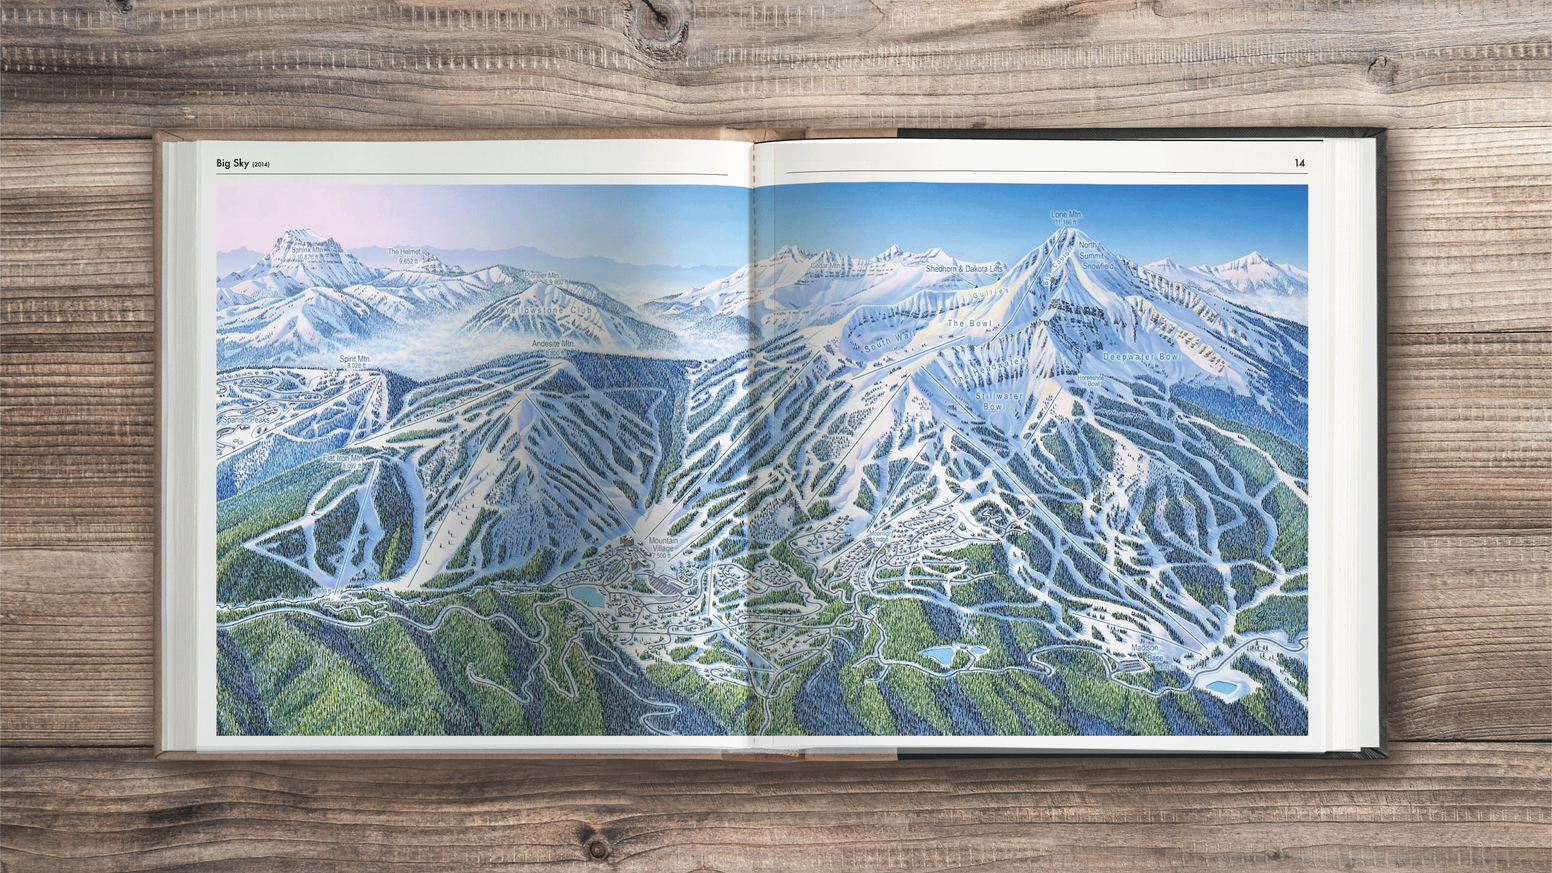 #1 Kickstarter Art Illustration Campaign of All Time!  Featuring a Hardcover Coffee Table Book and Art Prints covering nearly 200 ski resorts hand-painted by legendary artist James Niehues